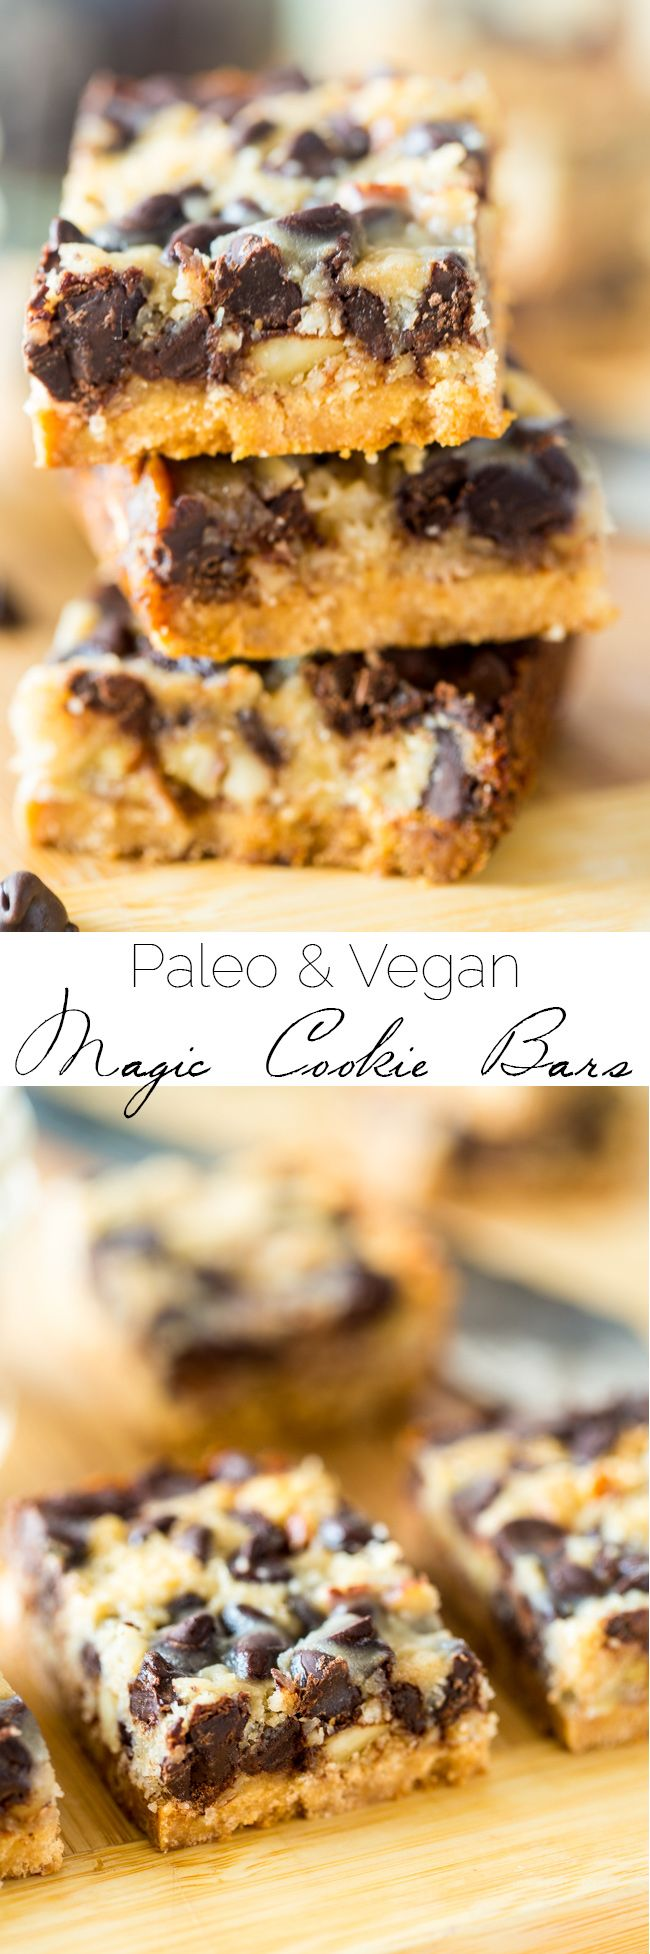 Paleo and Vegan Magic Cookie Bars - These magic cookie bars are a healthier…